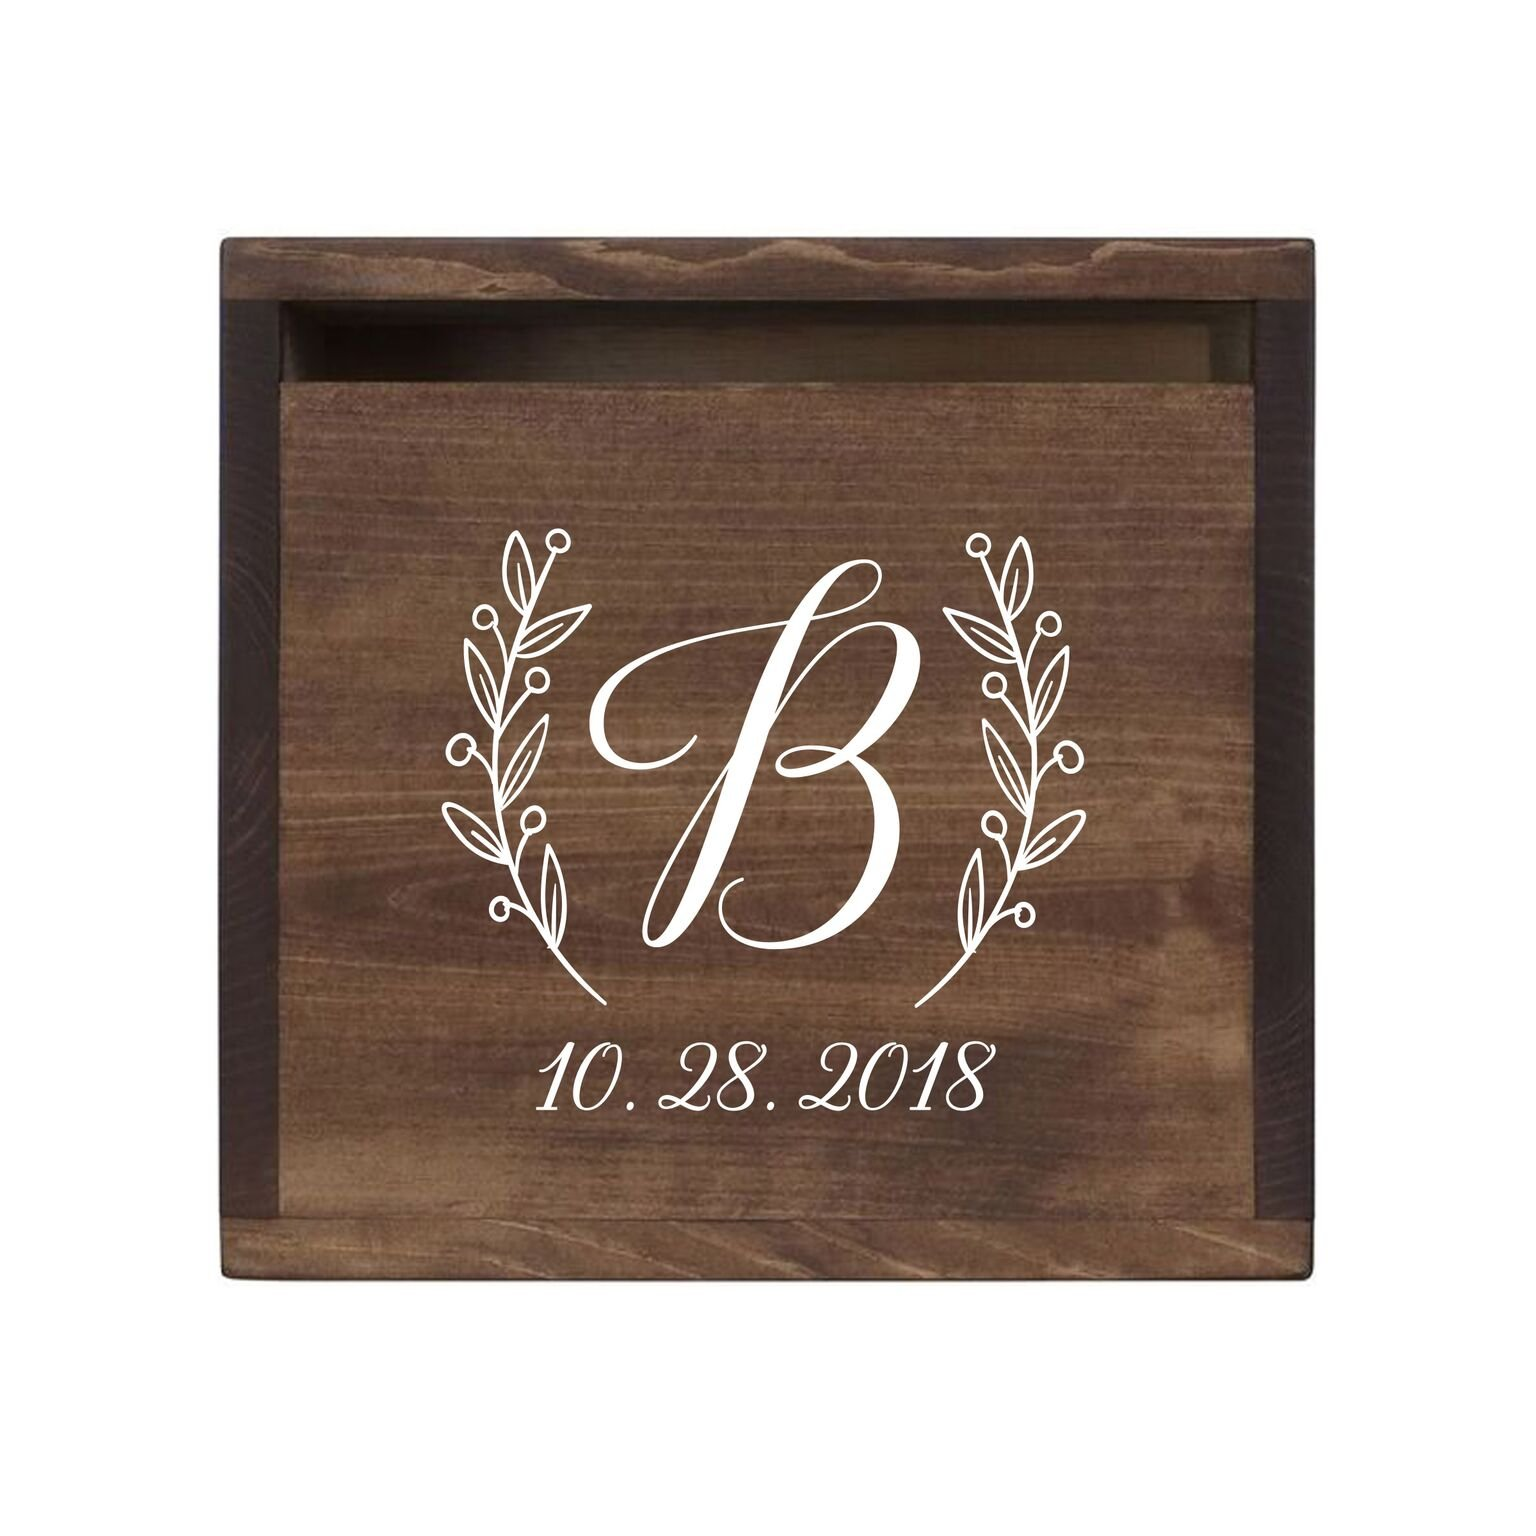 LifeSong Milestones Personalized Initial Rustic Wooden Wedding Card Box Custom Card Holder with Front Slot for Newlyweds Couples Reception 13.5'' L x 12'' W x 12.5'' T (Walnut)